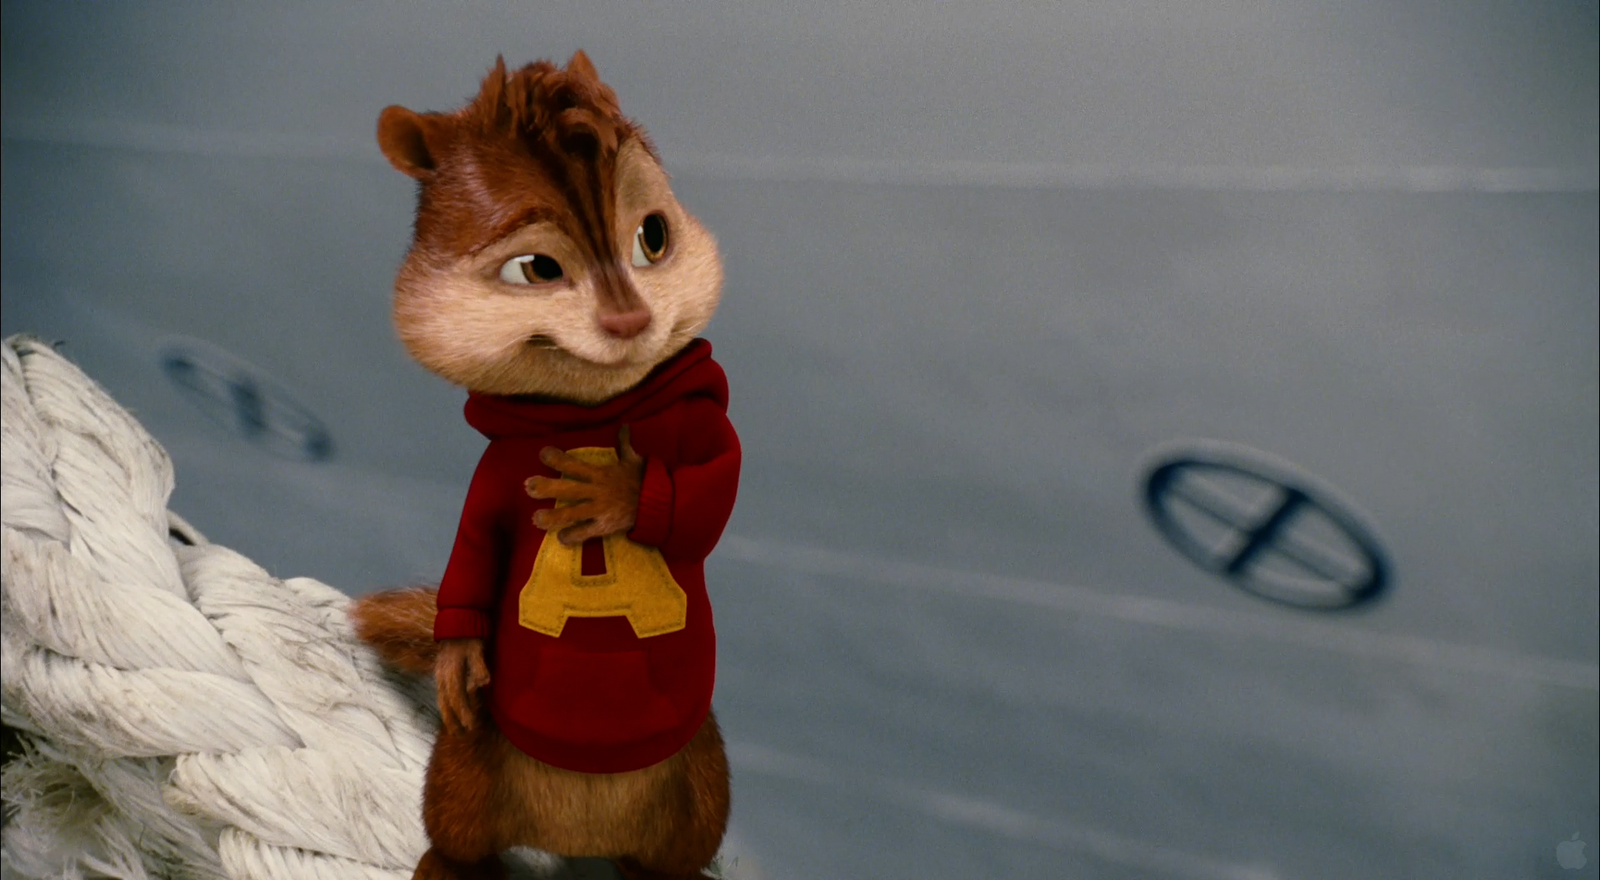 Free Download Wallpaper Alvin And The Chipmunks Chipwrecked Movie Wallpapers 1600x880 For Your Desktop Mobile Tablet Explore 49 Alvin And The Chipmunks Wallpaper Chipmunk Wallpaper Chipettes Wallpaper